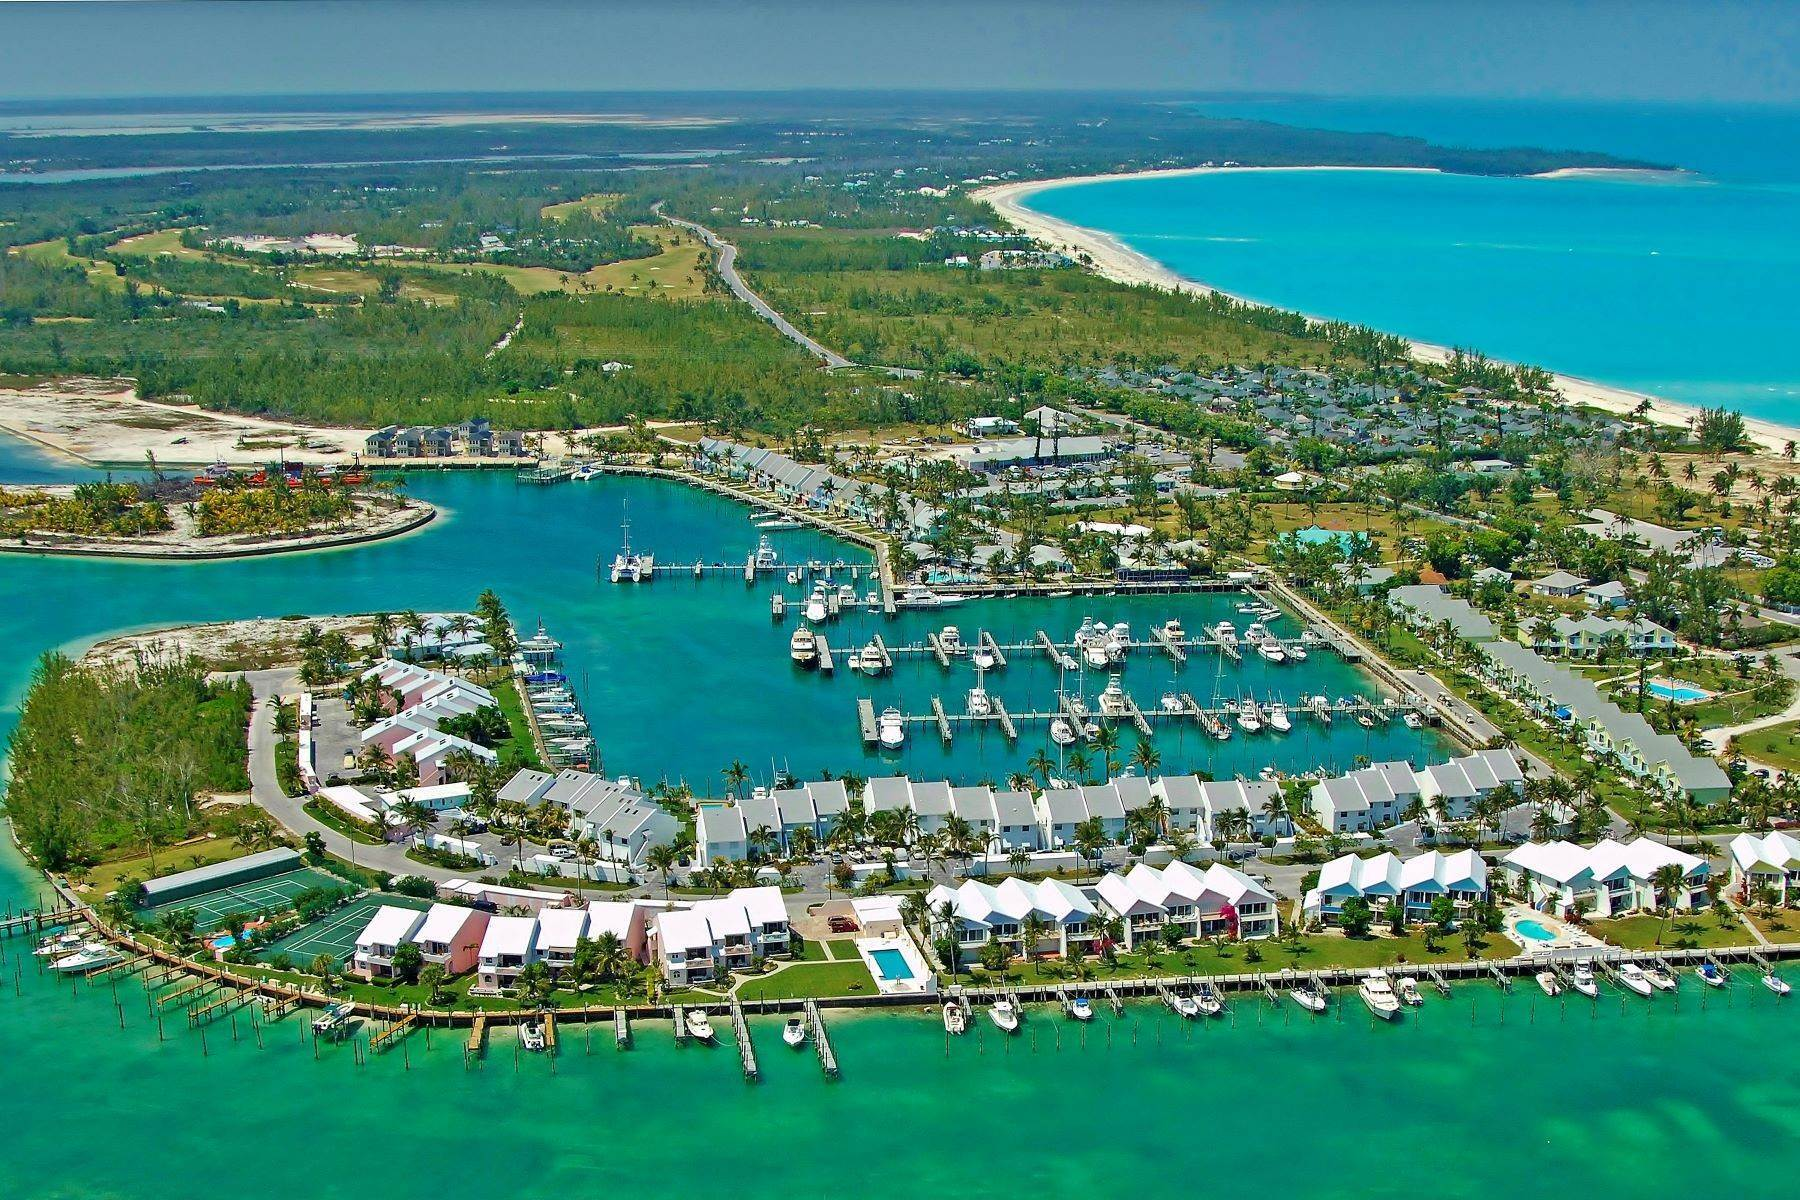 7. Land at Treasure Cay, Abaco, Bahamas